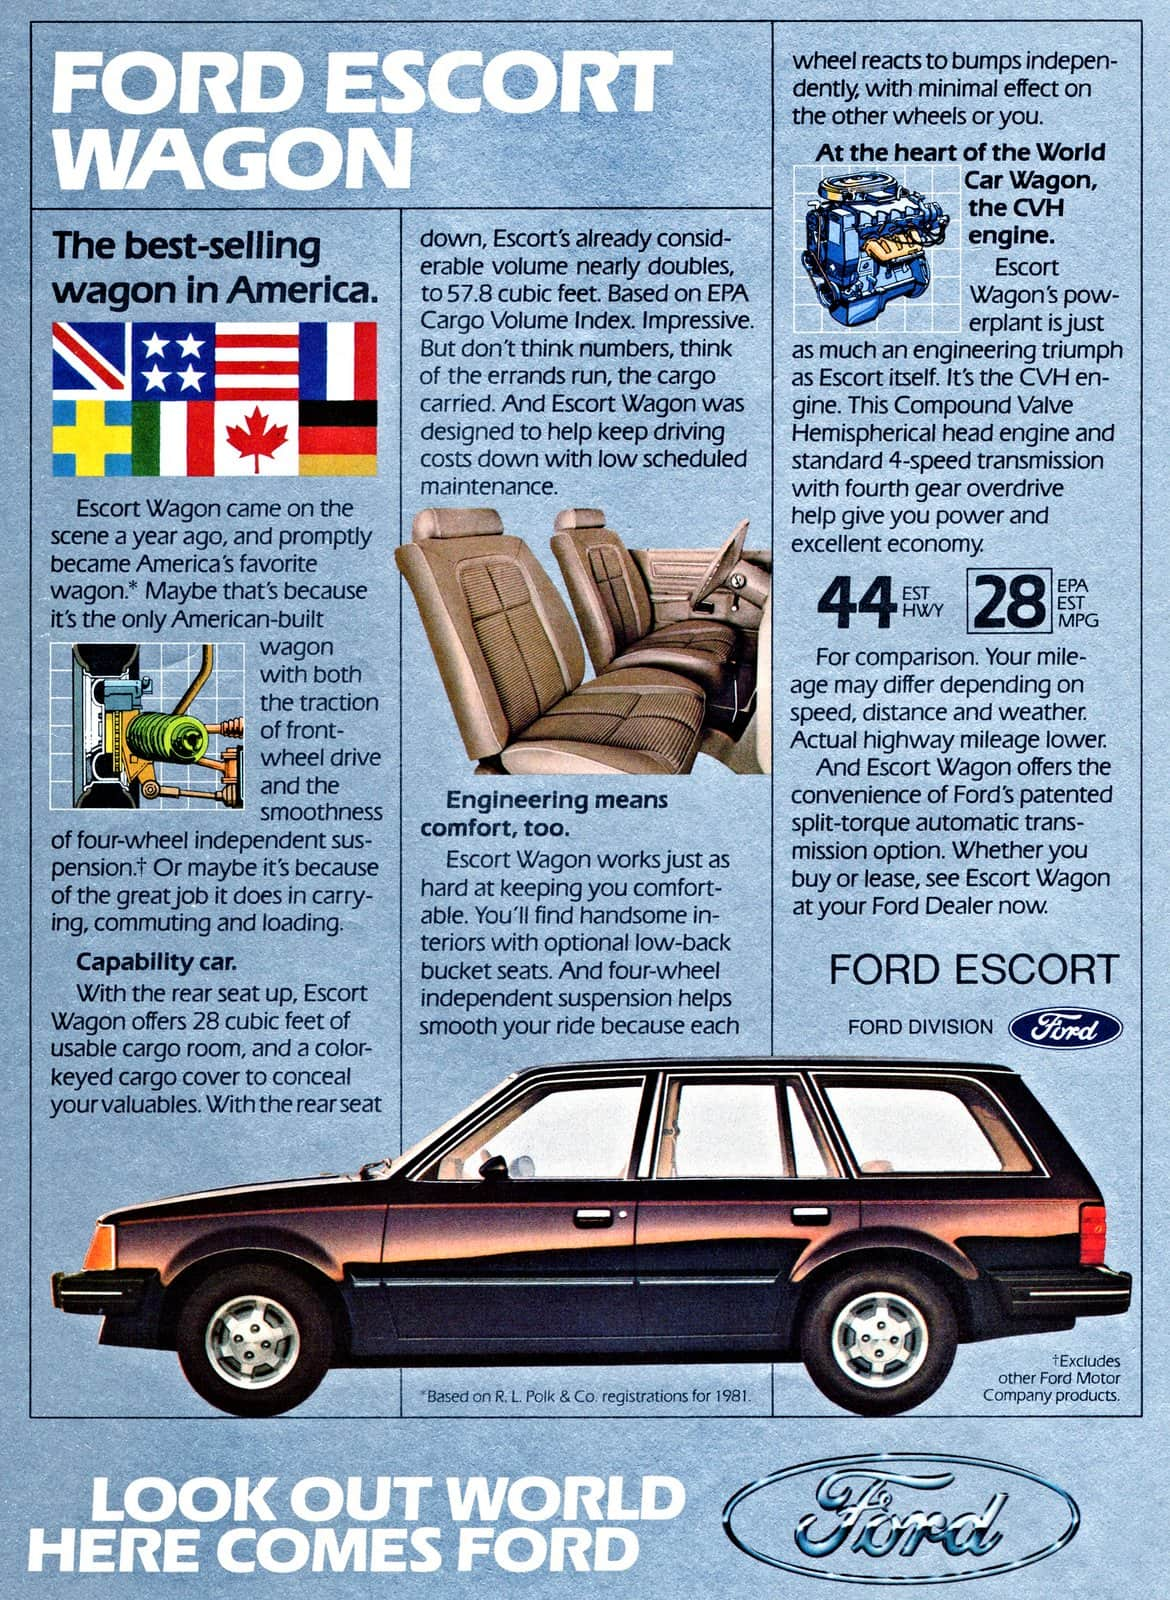 Vintage brown 1982 Ford Escort Wagon ad